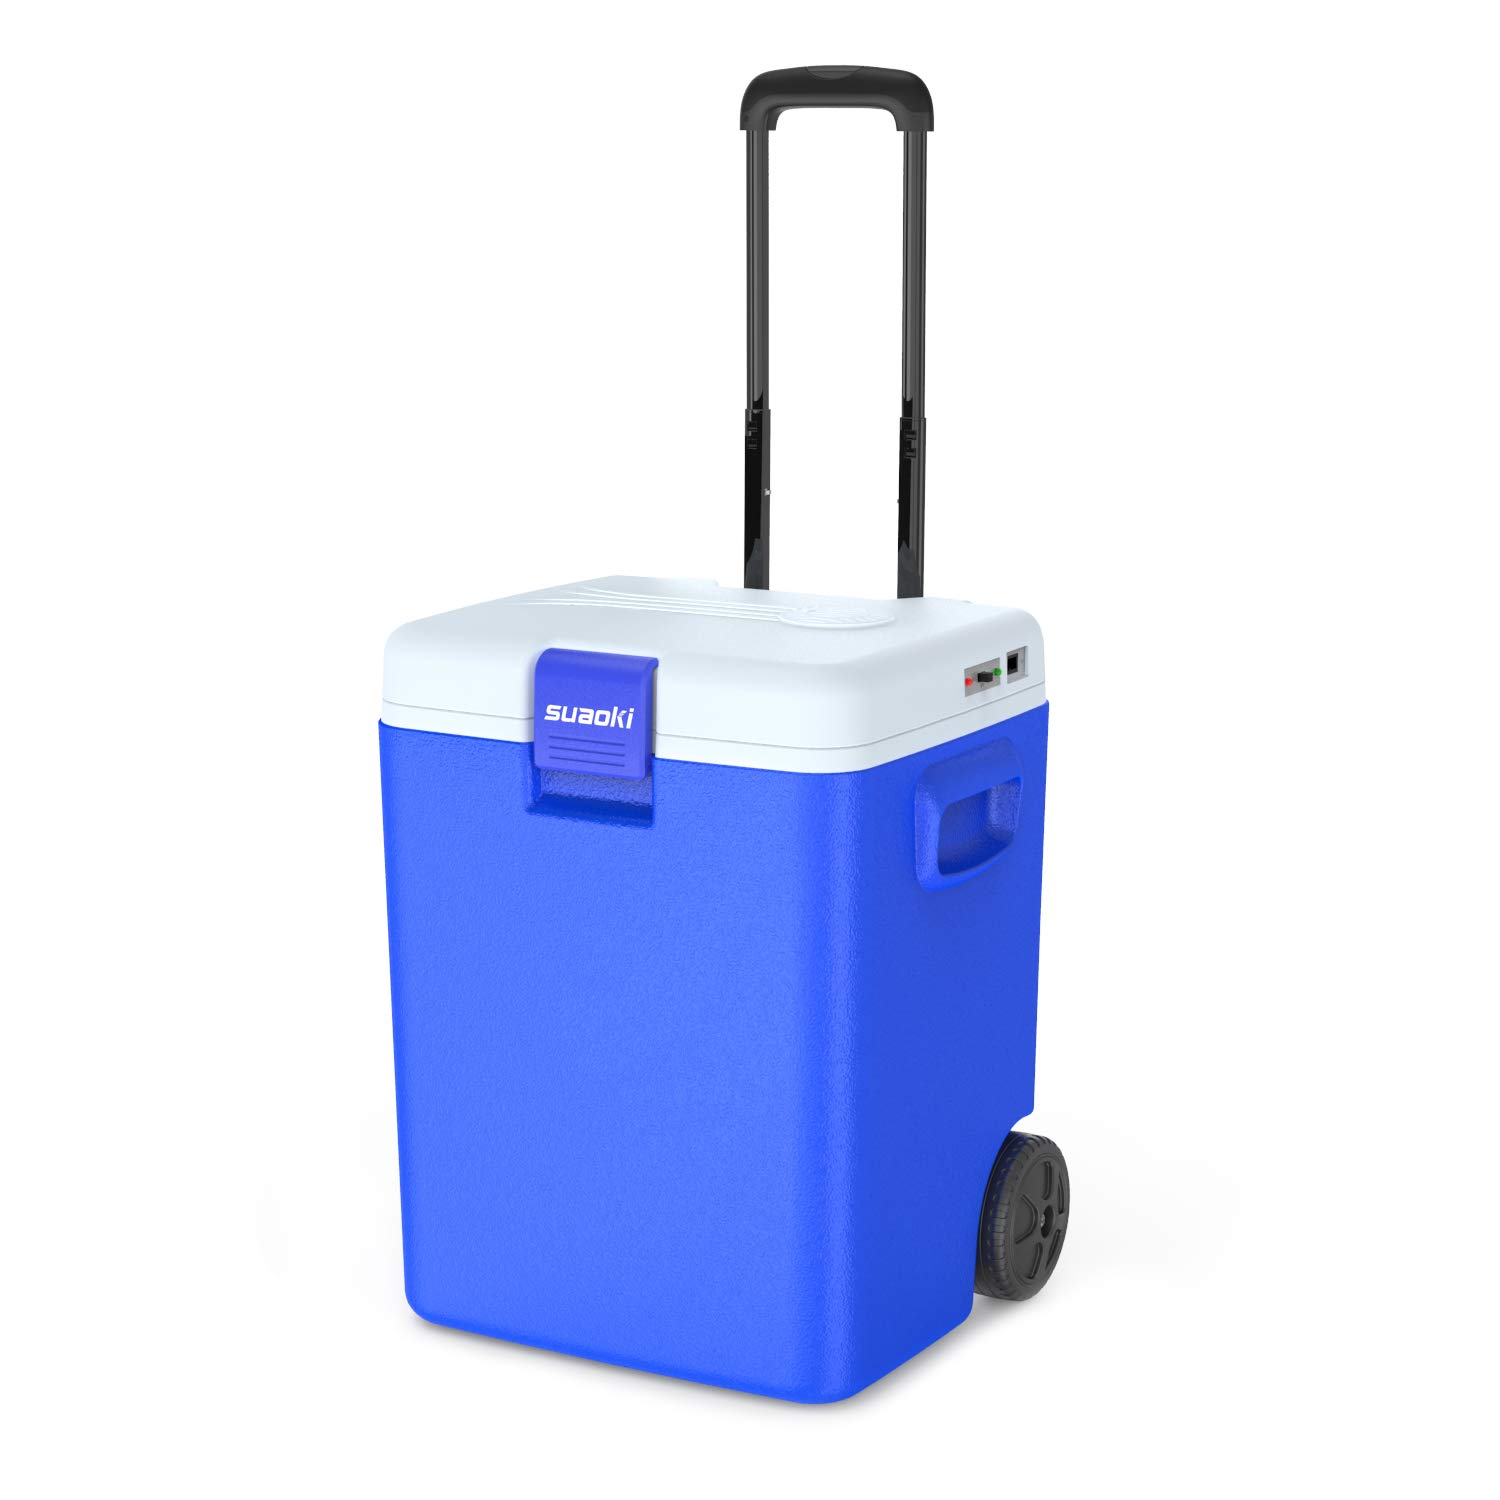 SUAOKI 32 Quart /30L Portable Car Fridge Electric Freezer and Warmer Thermoelectric System with Wheels and Handle for Car Dorm Travel Camping Picnic Outdoor Party, 12V DC (Blue)